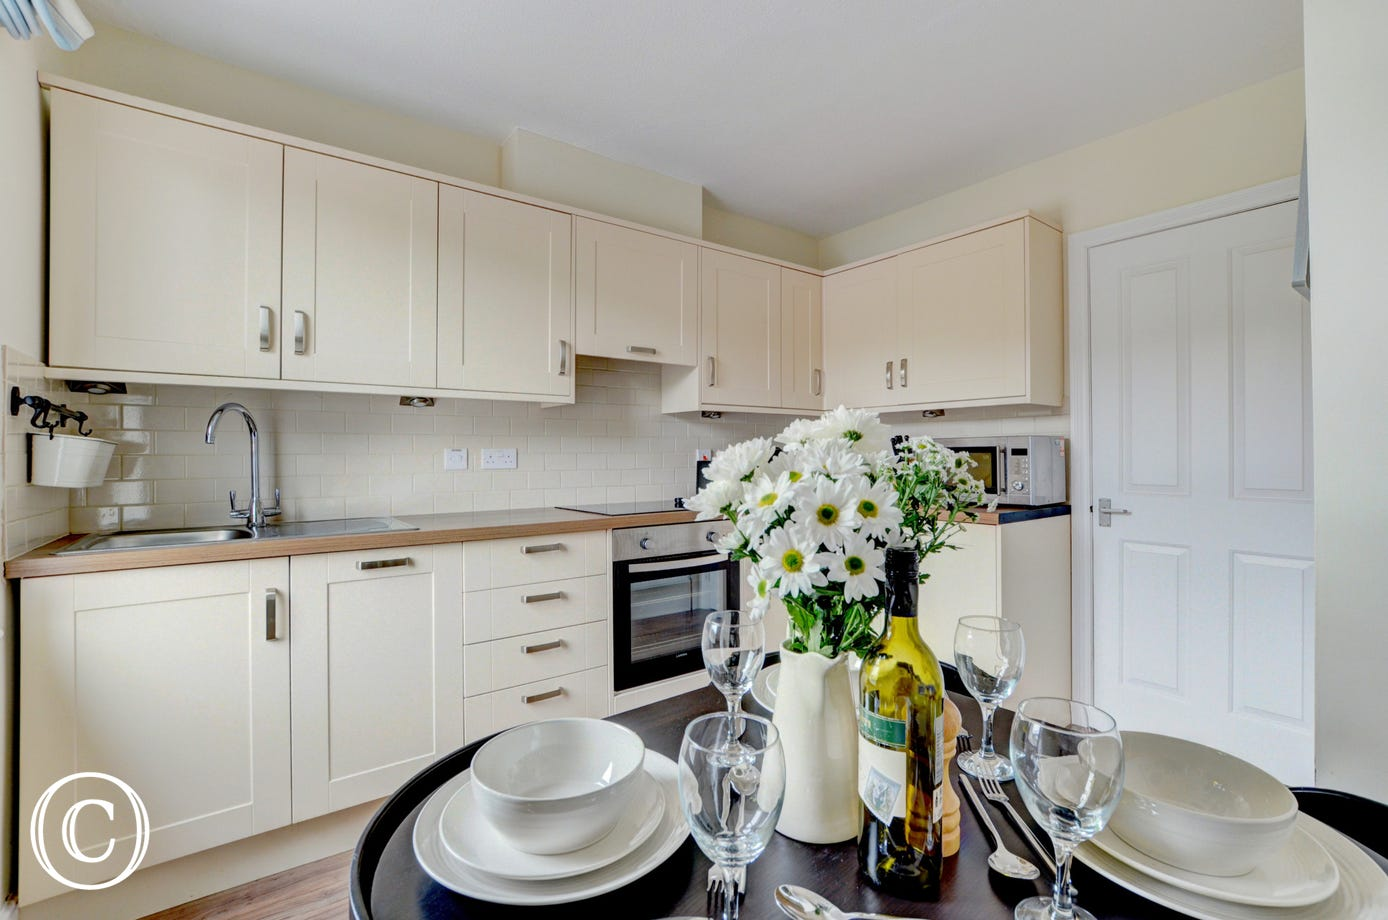 A well equipped kitchen has everything you need for meals with family or friends